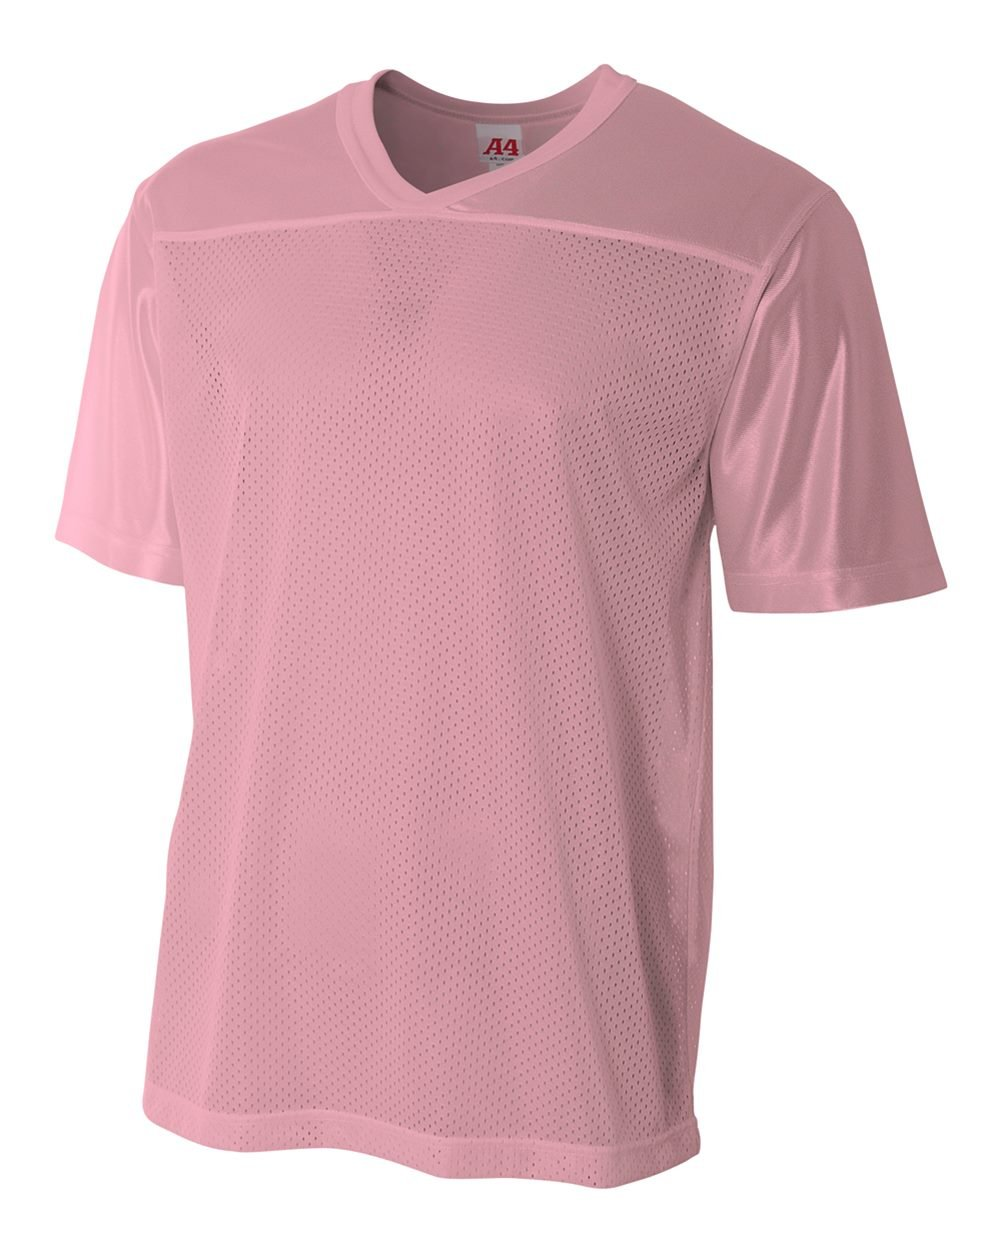 Adult Pink 2X (Blank Back) Moisture Wicking V-Neck Football Jersey